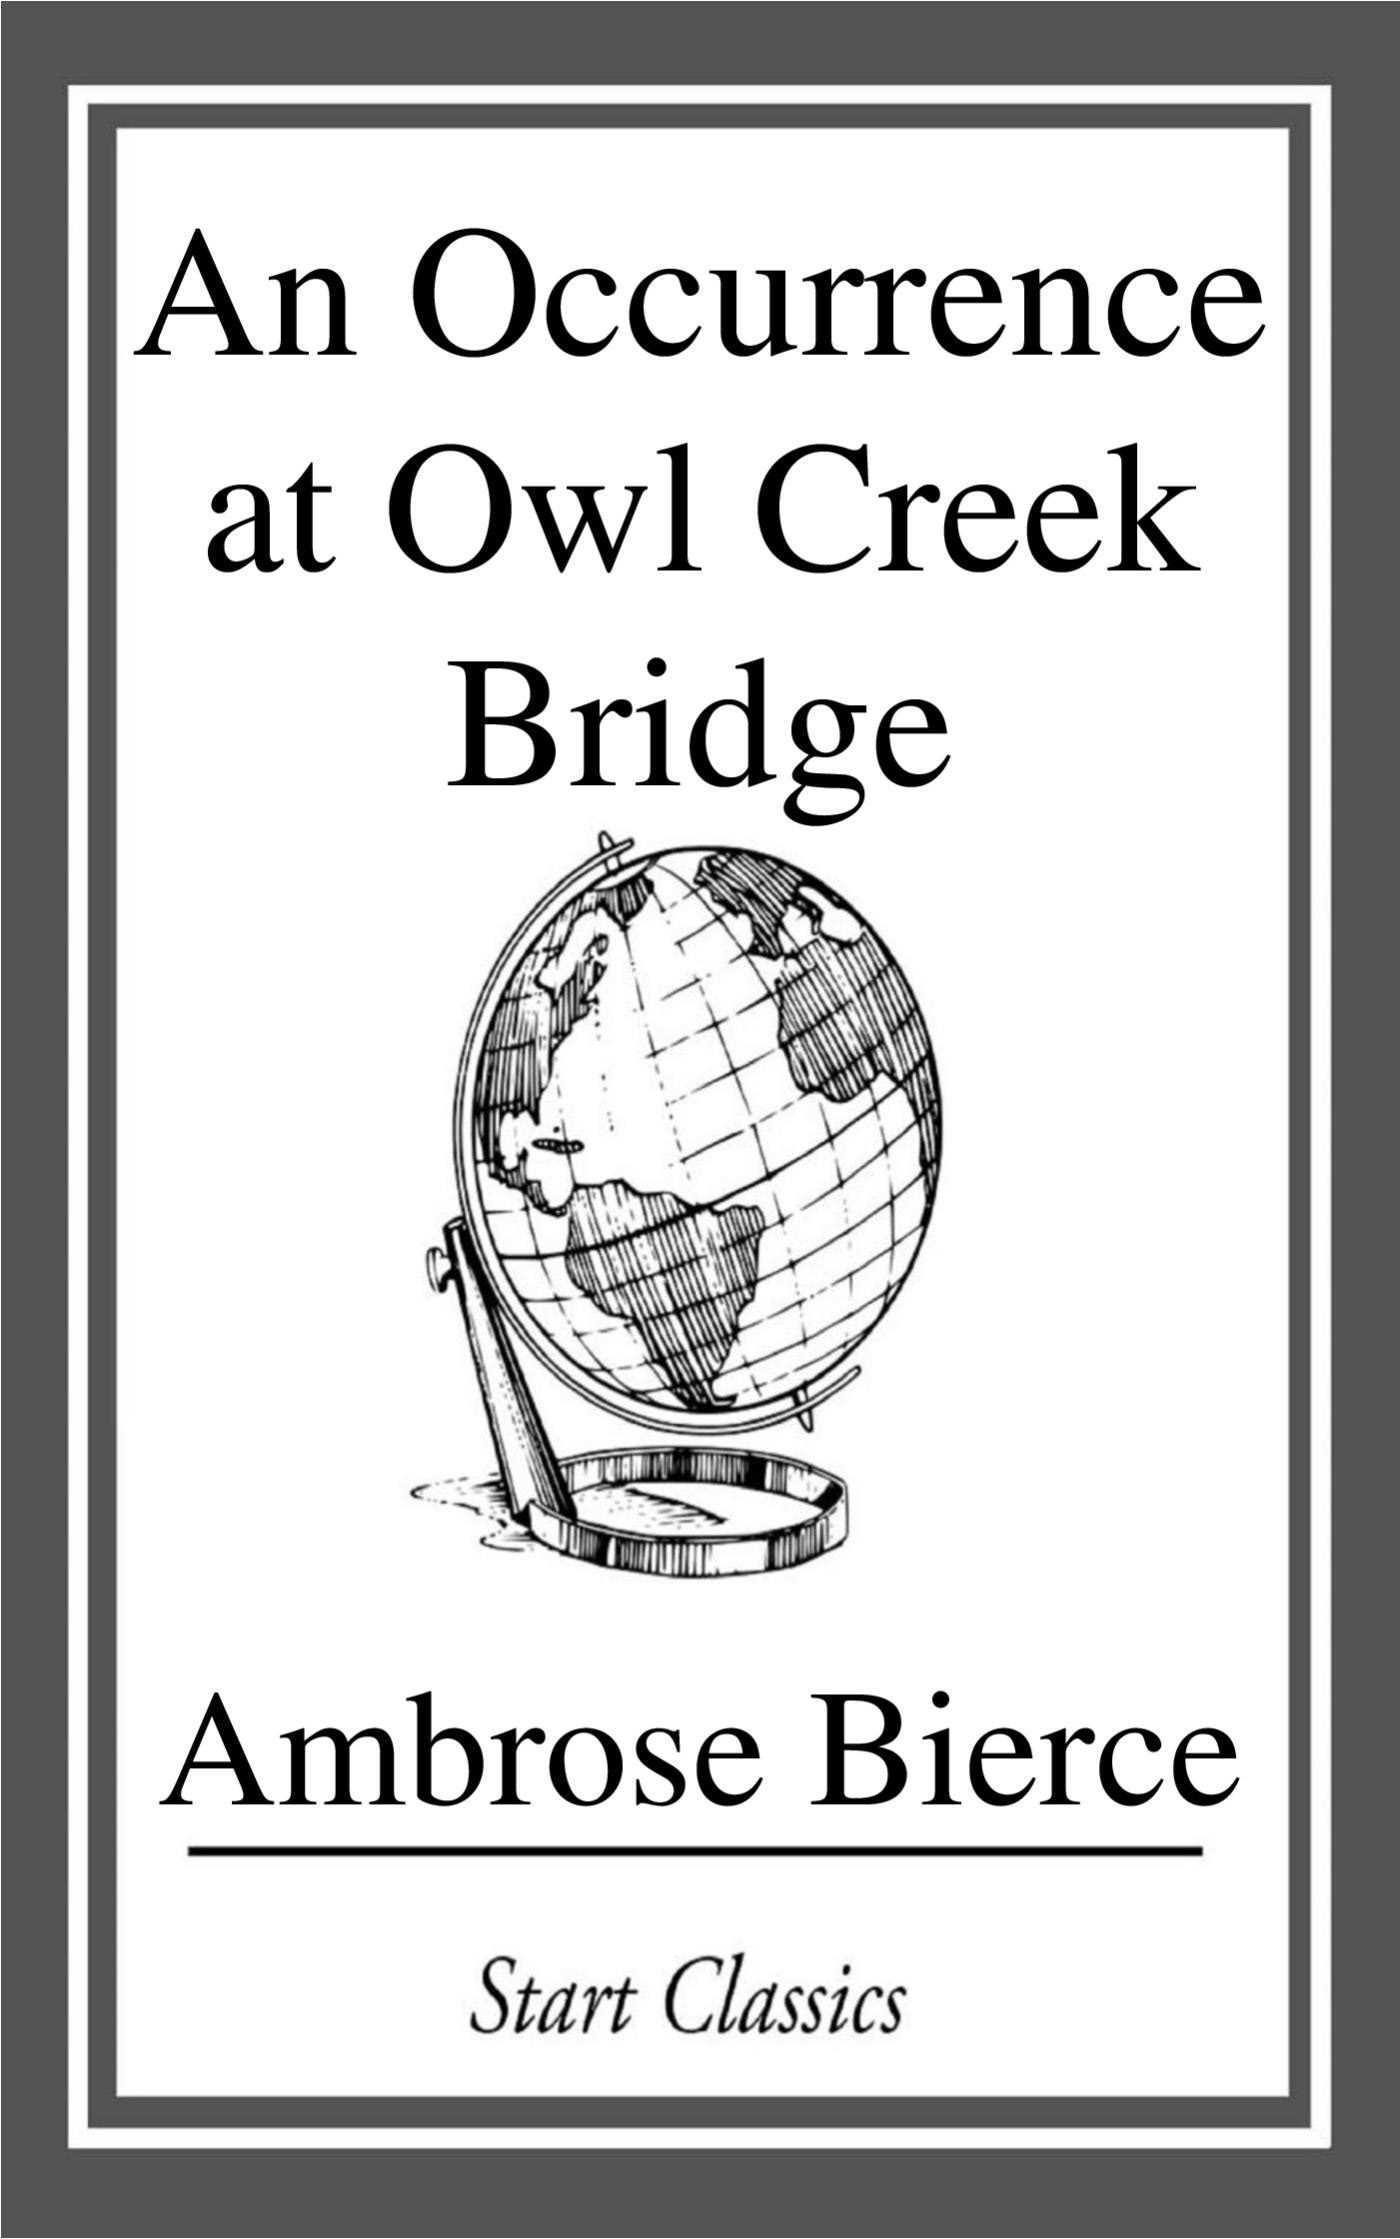 an occurrence at owl creek bridge style